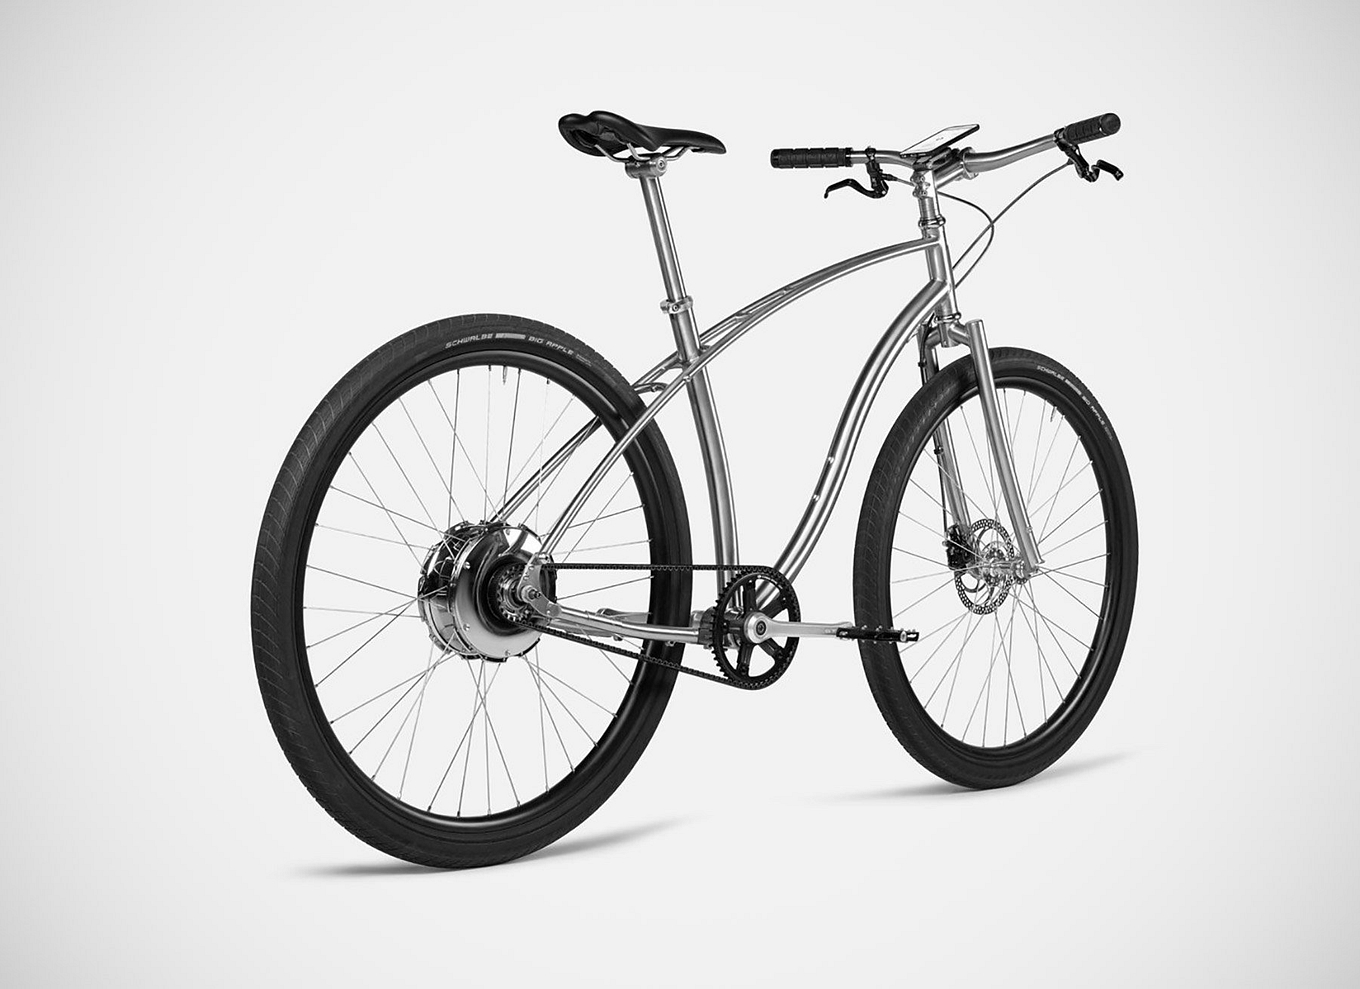 budnitz-model-e-the-worlds-lightest-electric-bicycle-8